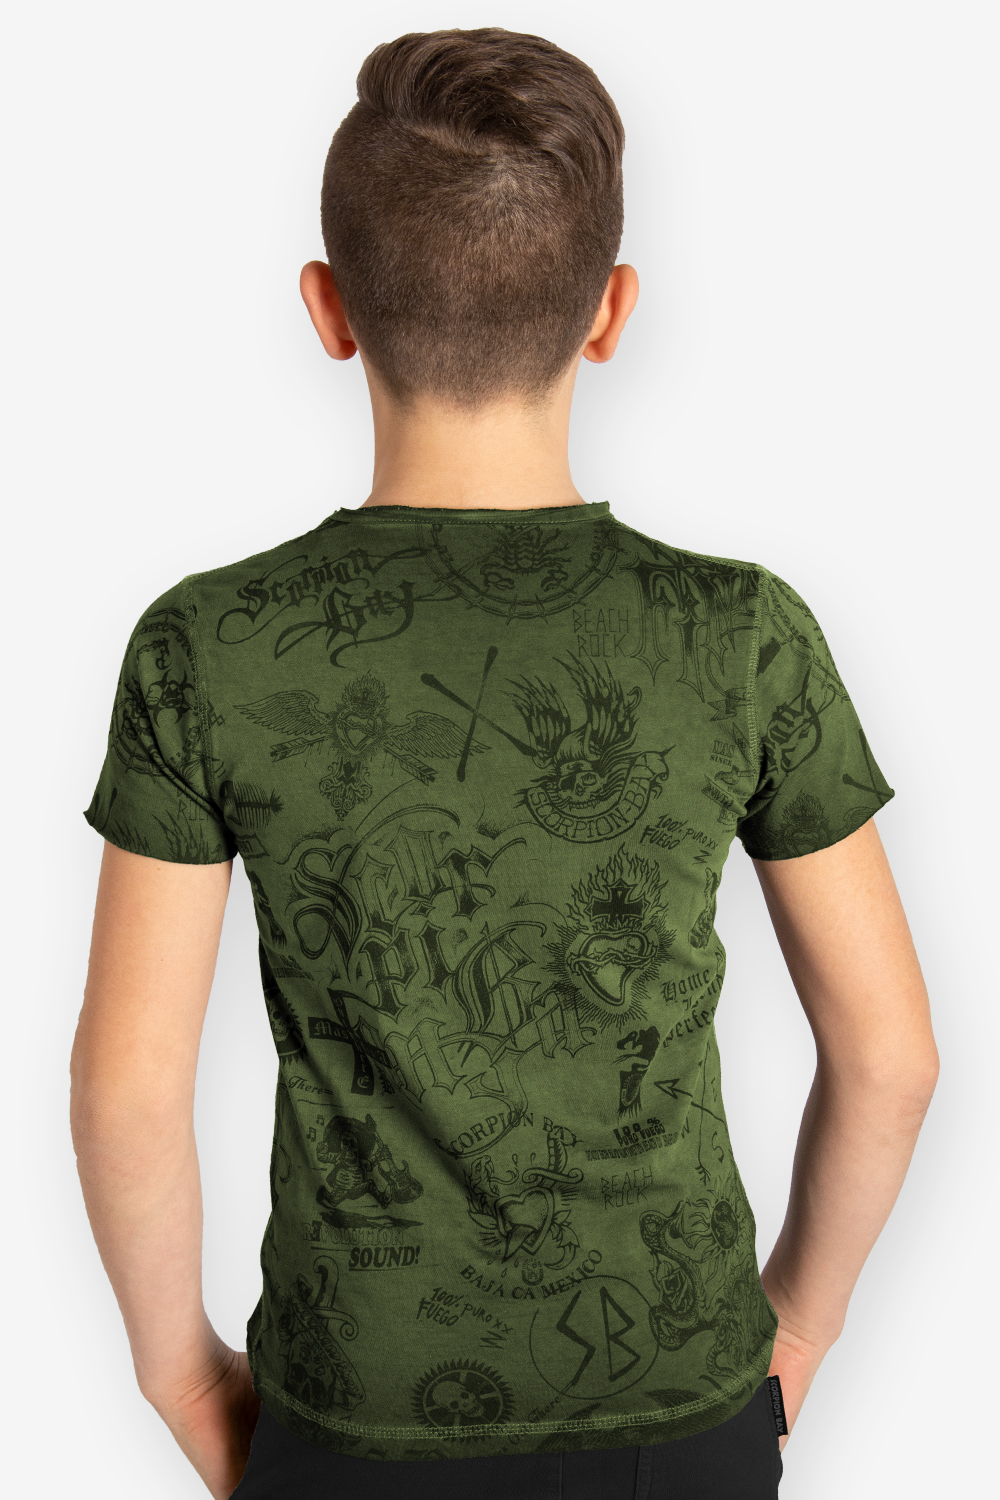 T-shirt Manica Corta per Boys Double Face 100% Cotone TATTOO